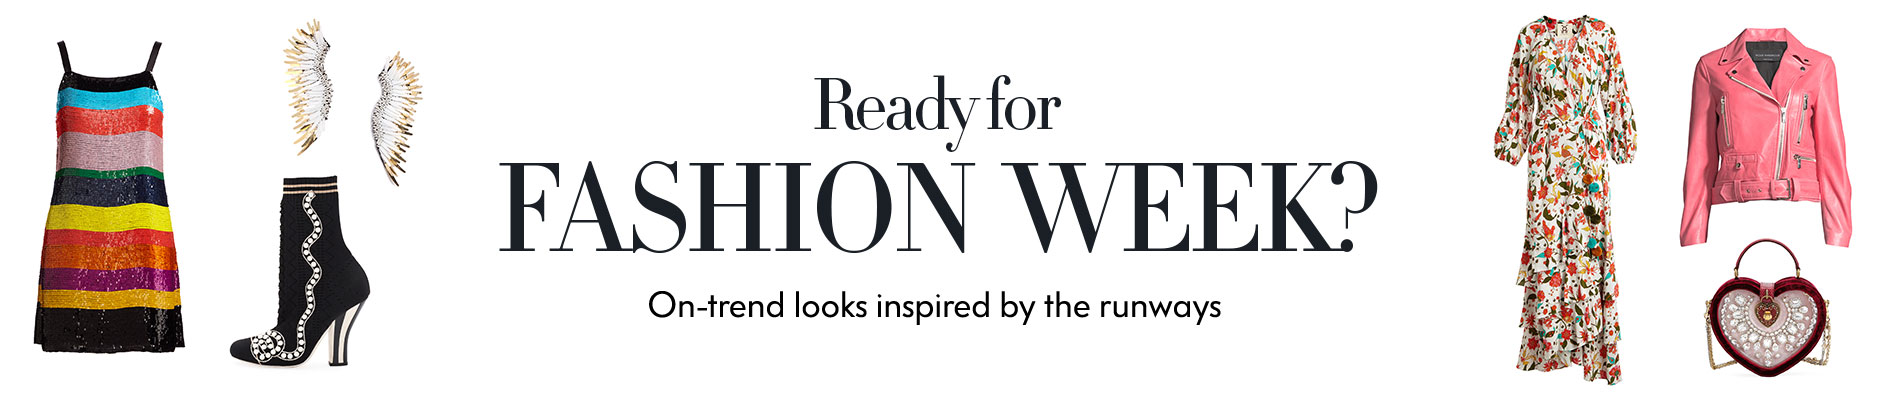 Ready for Fashion Week? On-trend looks inspired by the runways